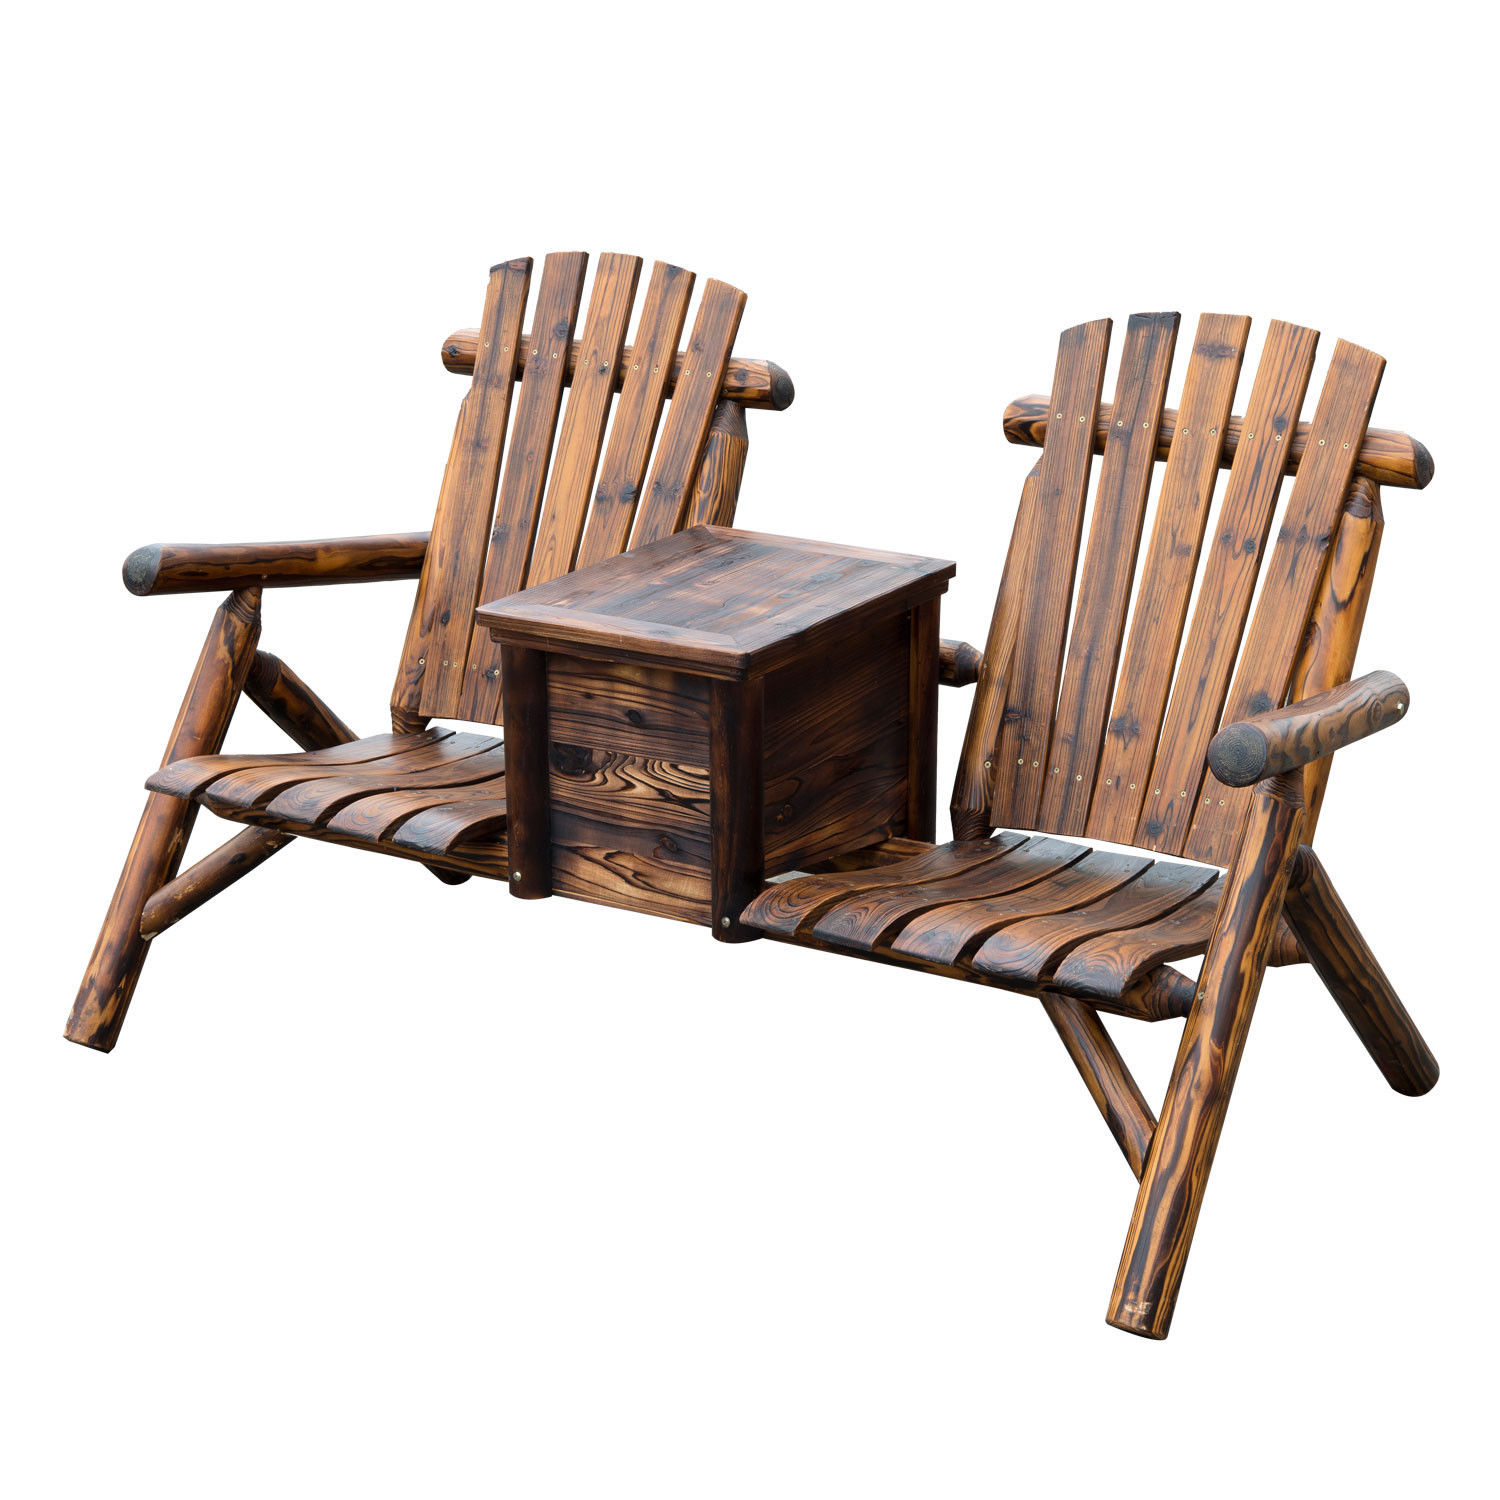 Outdoor Wooden Chairs Outdoor Patio 2 Person Double Adirondack Wood Bench Chair